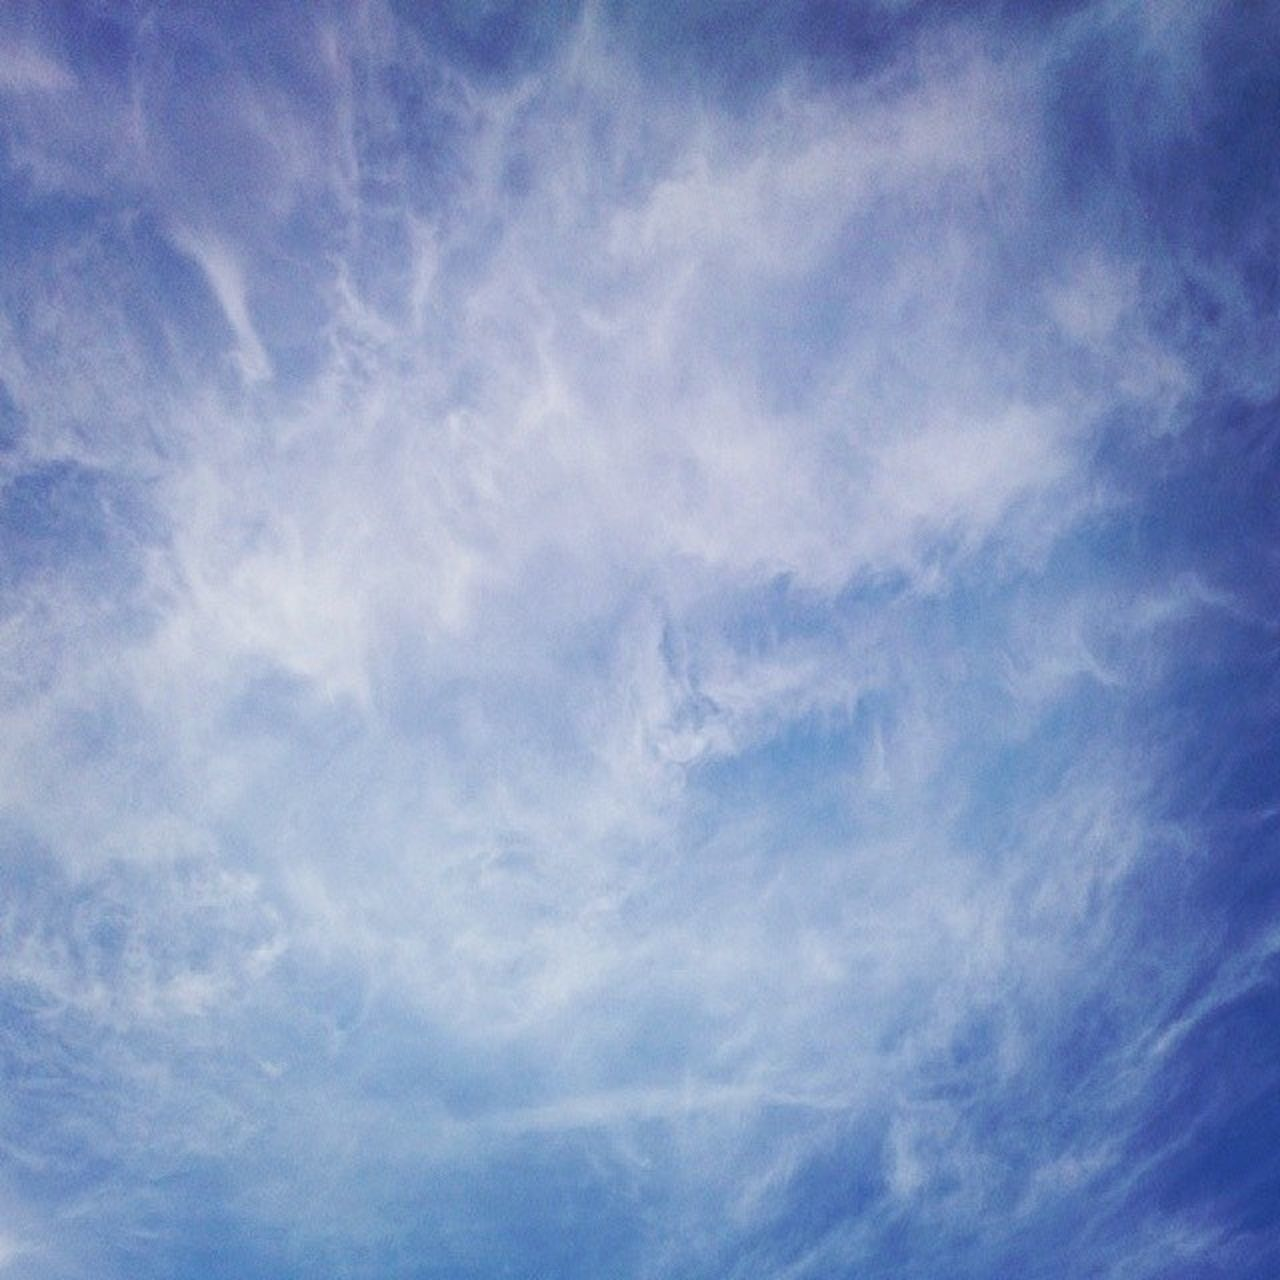 sky, cloud - sky, low angle view, beauty in nature, nature, sky only, blue, backgrounds, scenics, no people, tranquility, tranquil scene, full frame, outdoors, day